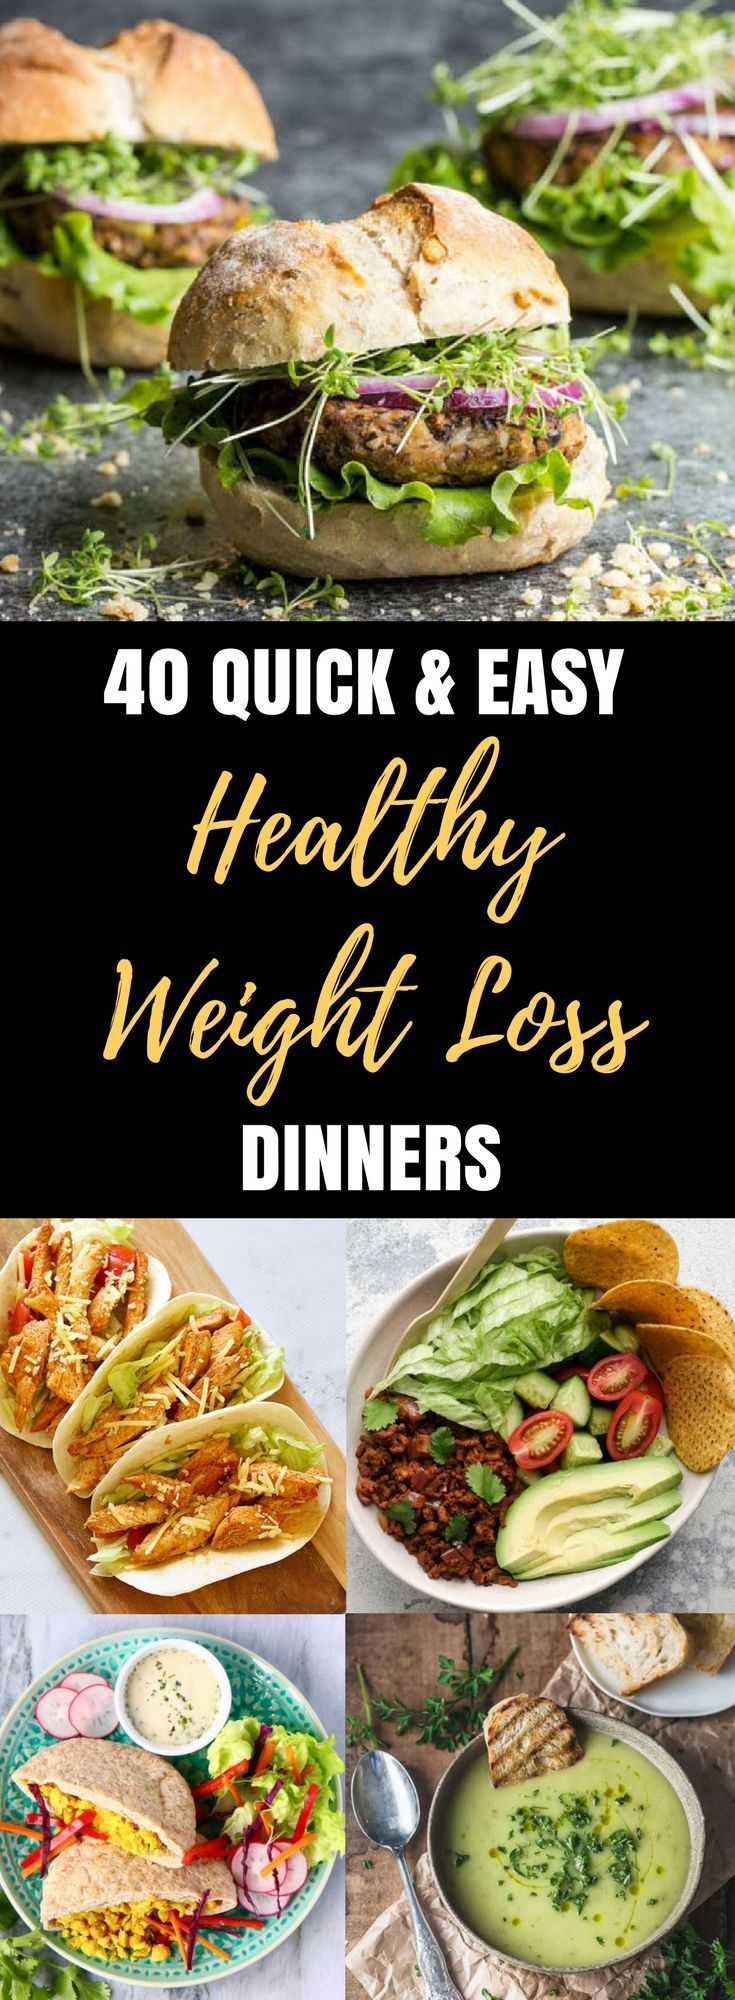 25 Quick and Easy Healthy Dinner Recipes images